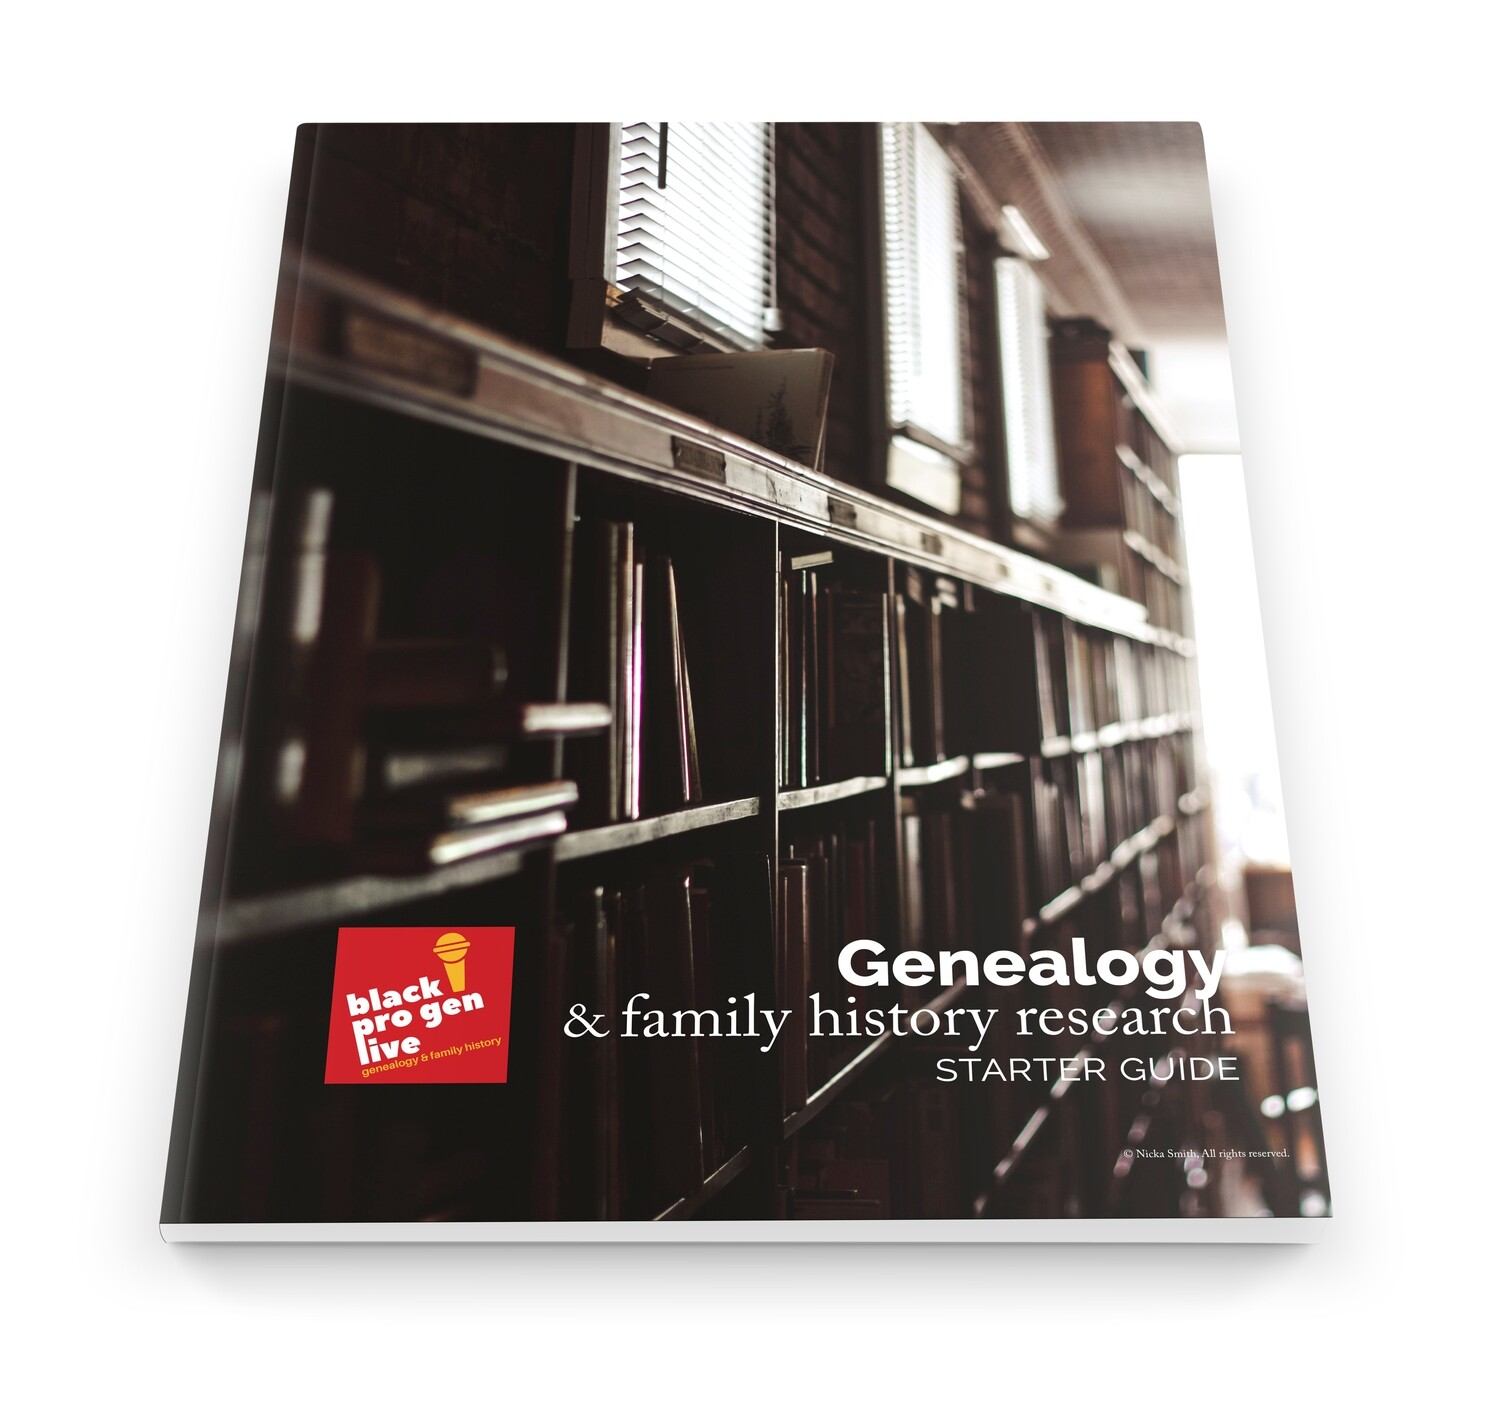 Genealogy & Family History Research Starter Guide (PDF)